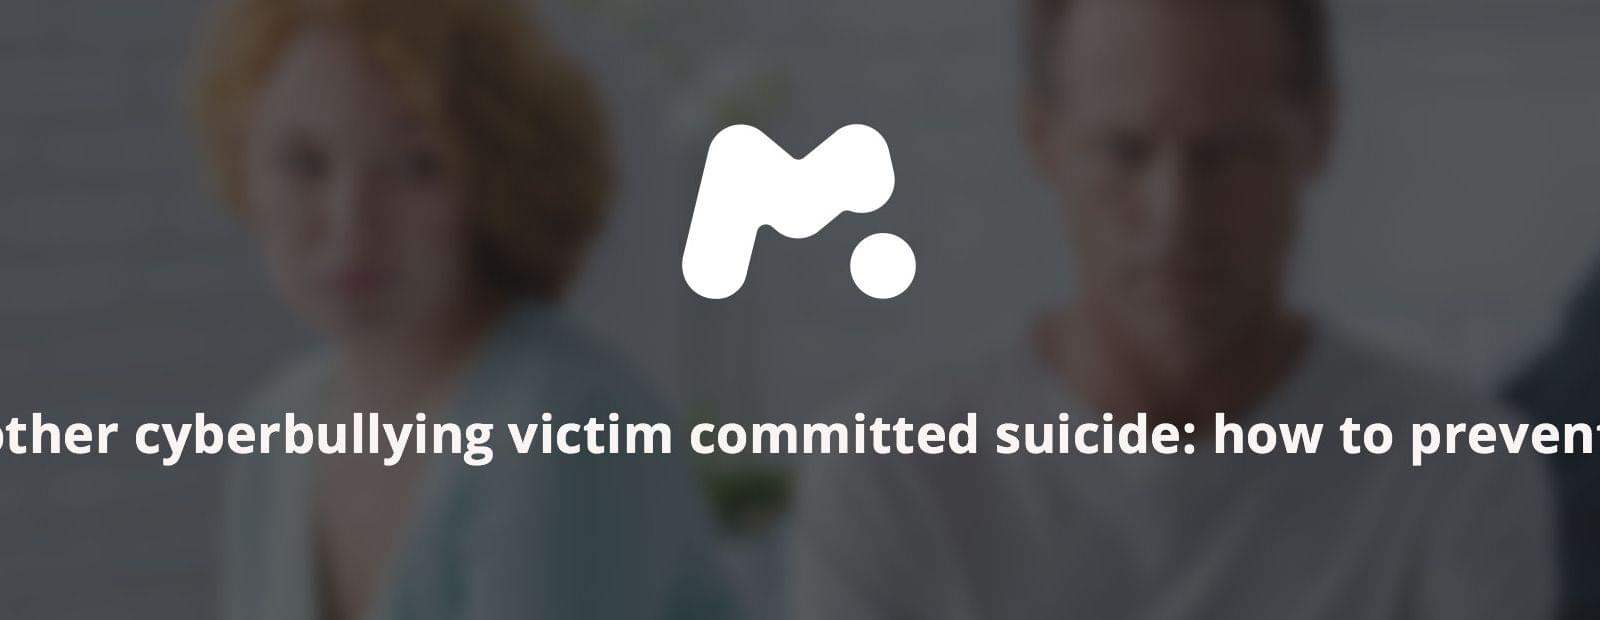 Another Cyberbullying Victim Has Committed Suicide, How To Prevent It